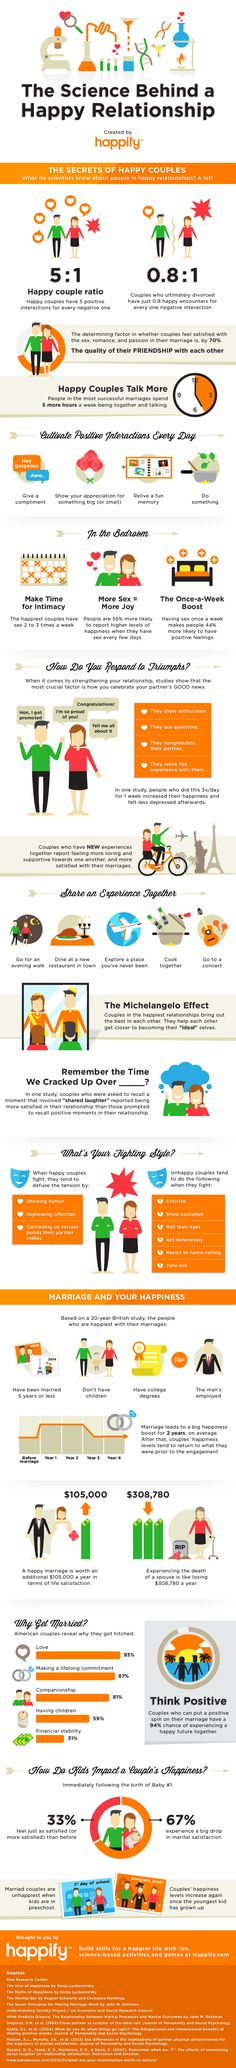 happy relationship infographic: don't agree with the kids part but the rest is good info